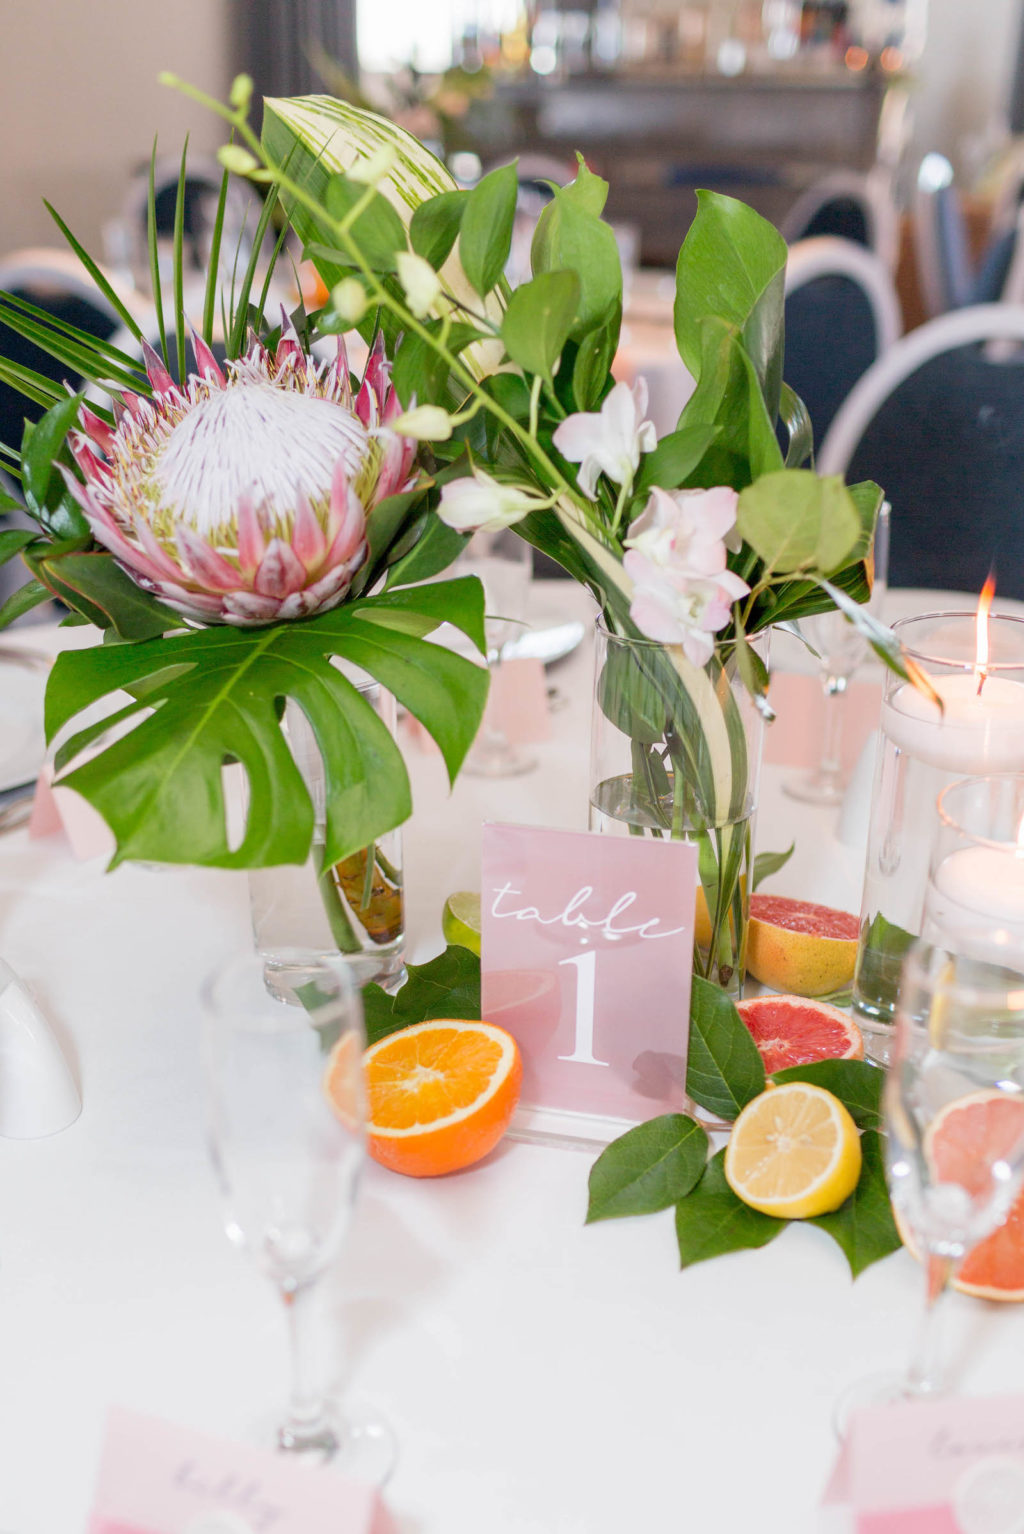 Tropical Florida Citrus Wedding Centerpieces with Cut Oranges Lemons and Grapefruit and Vases of Monstera Palm Greenery and Pink Orchids and Protea with Floating Candles | Pink Acrylic Wedding Table Number